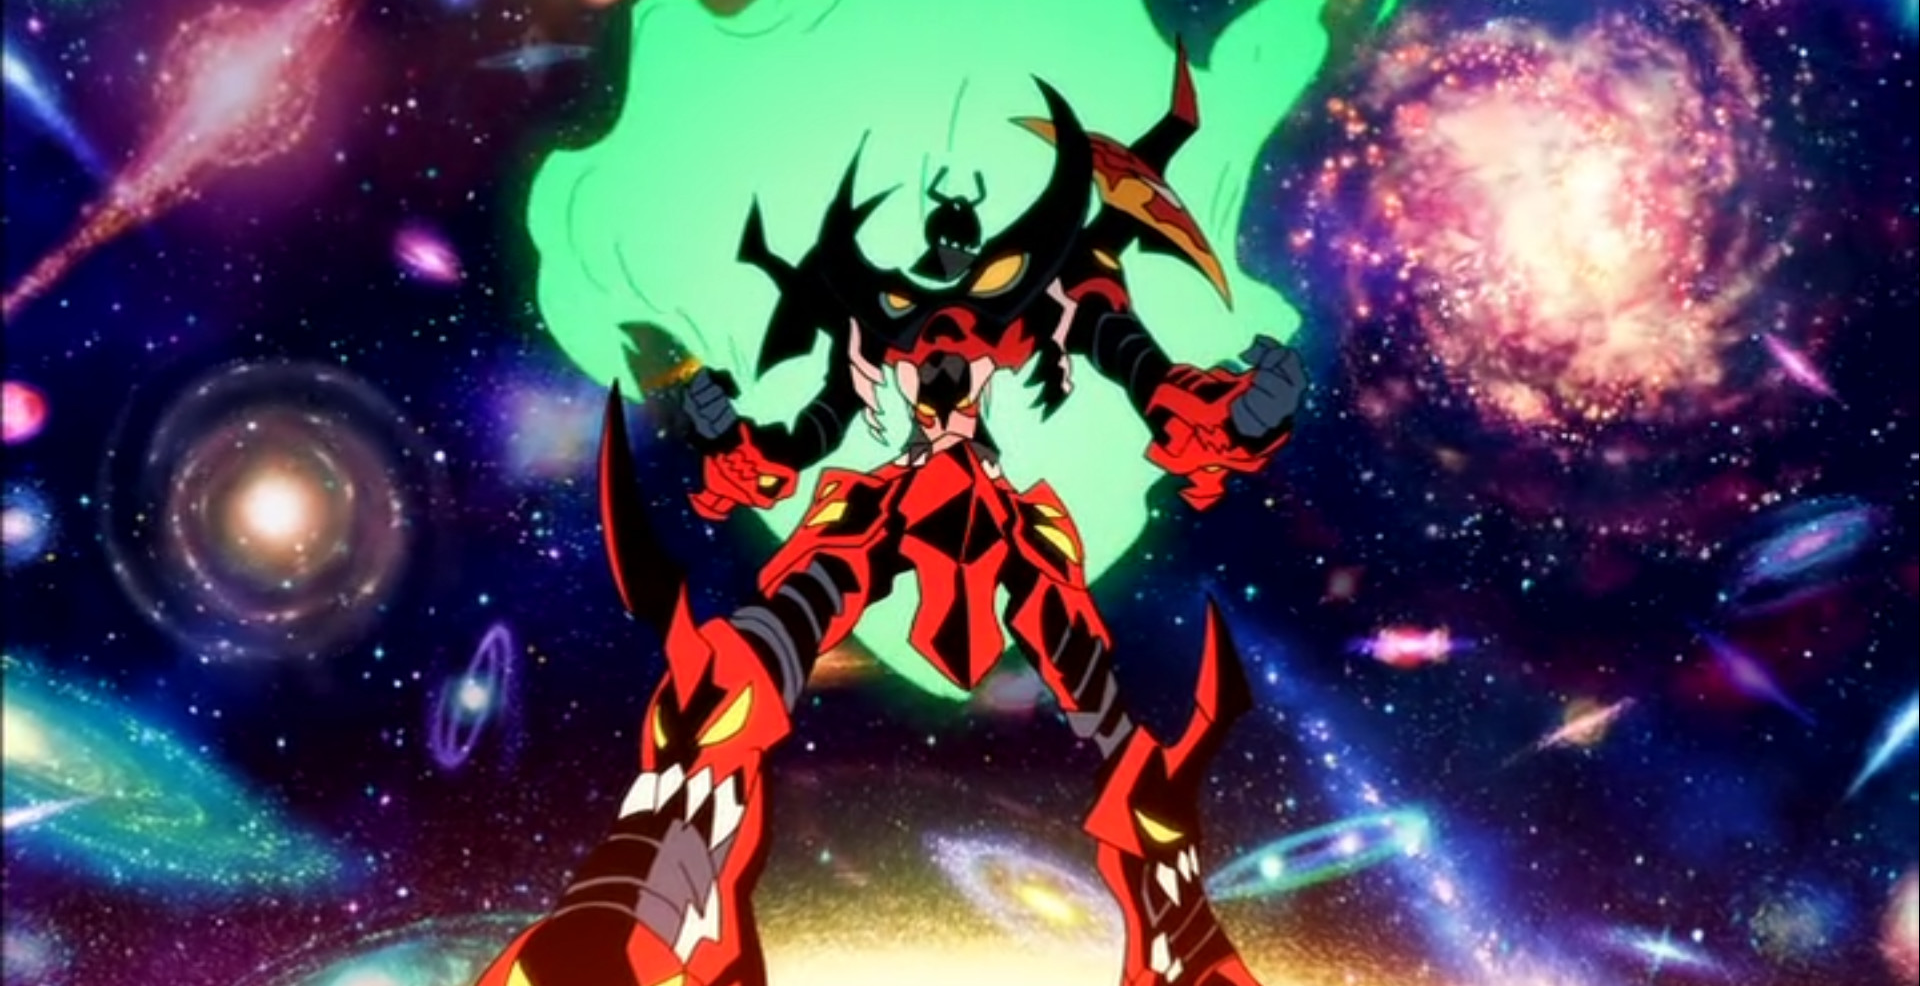 Xem phim Tengen Toppa Gurren Lagann Movie 1: Gurren-hen - Gurren Lagann The Movie: Childhood's End	, Gekijouban Tengen Toppa Gurren Lagann: Guren-hen, Tengen Toppa Gurren Lagann the Movie Vietsub